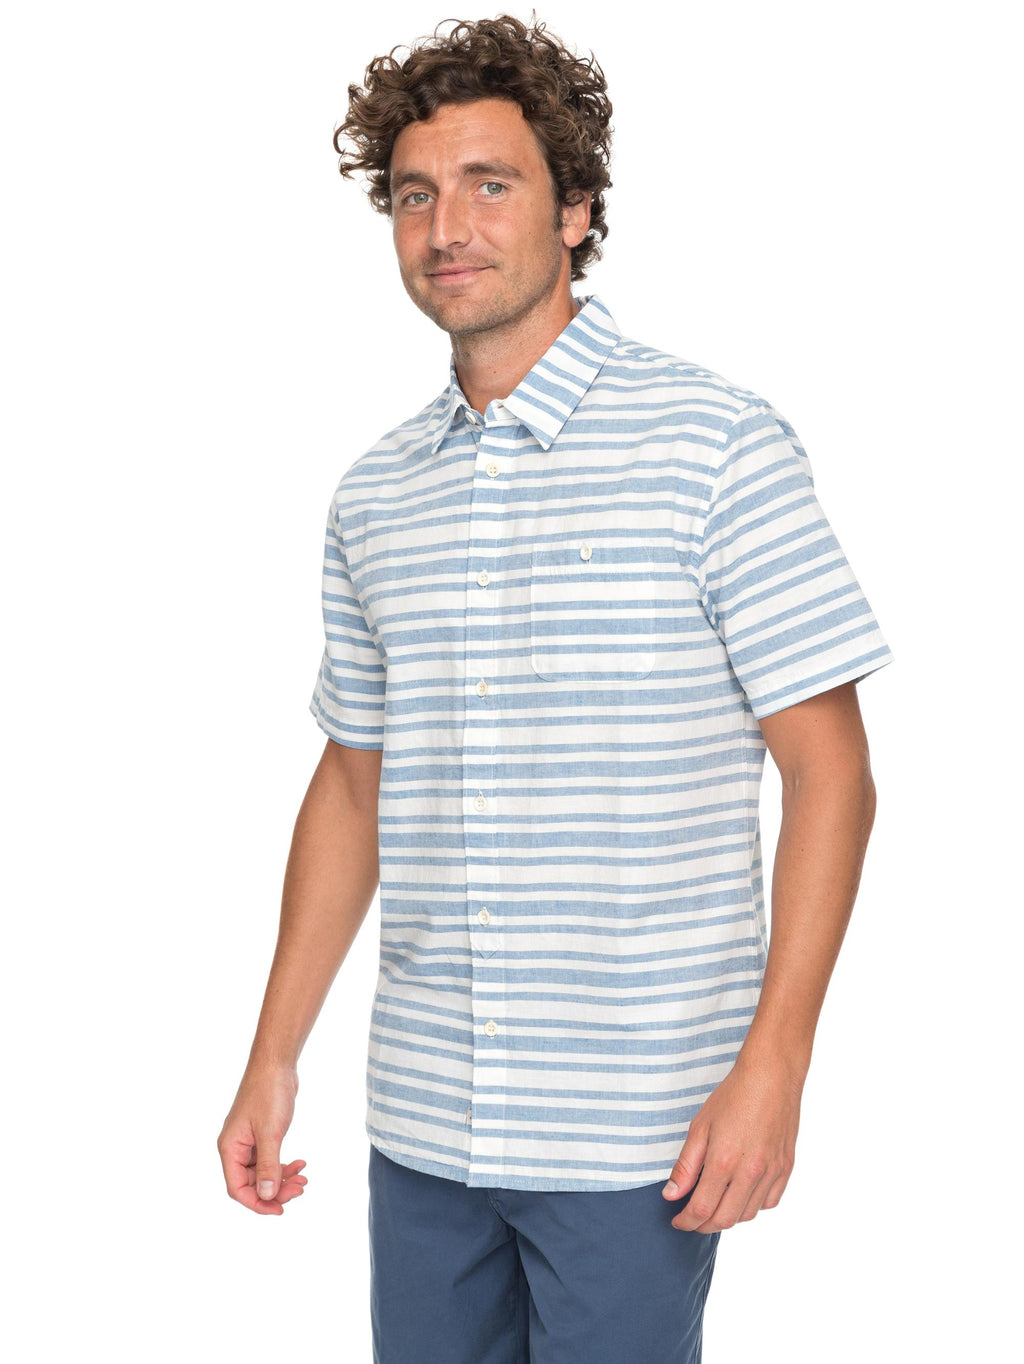 Quiksilver Waterman Flying First Short Sleeve Shirt - Men's